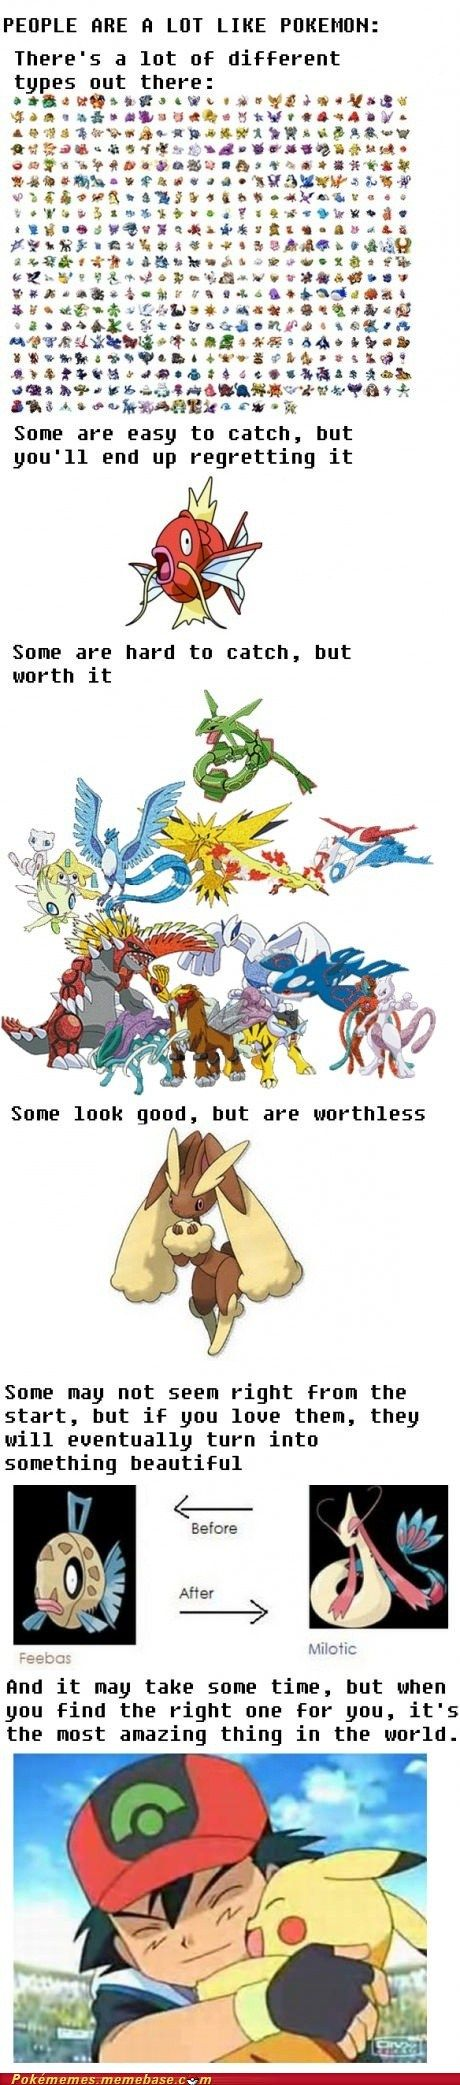 People Are a Lot Like Pokémon... i can't believe i agree with this, let alone see the point.